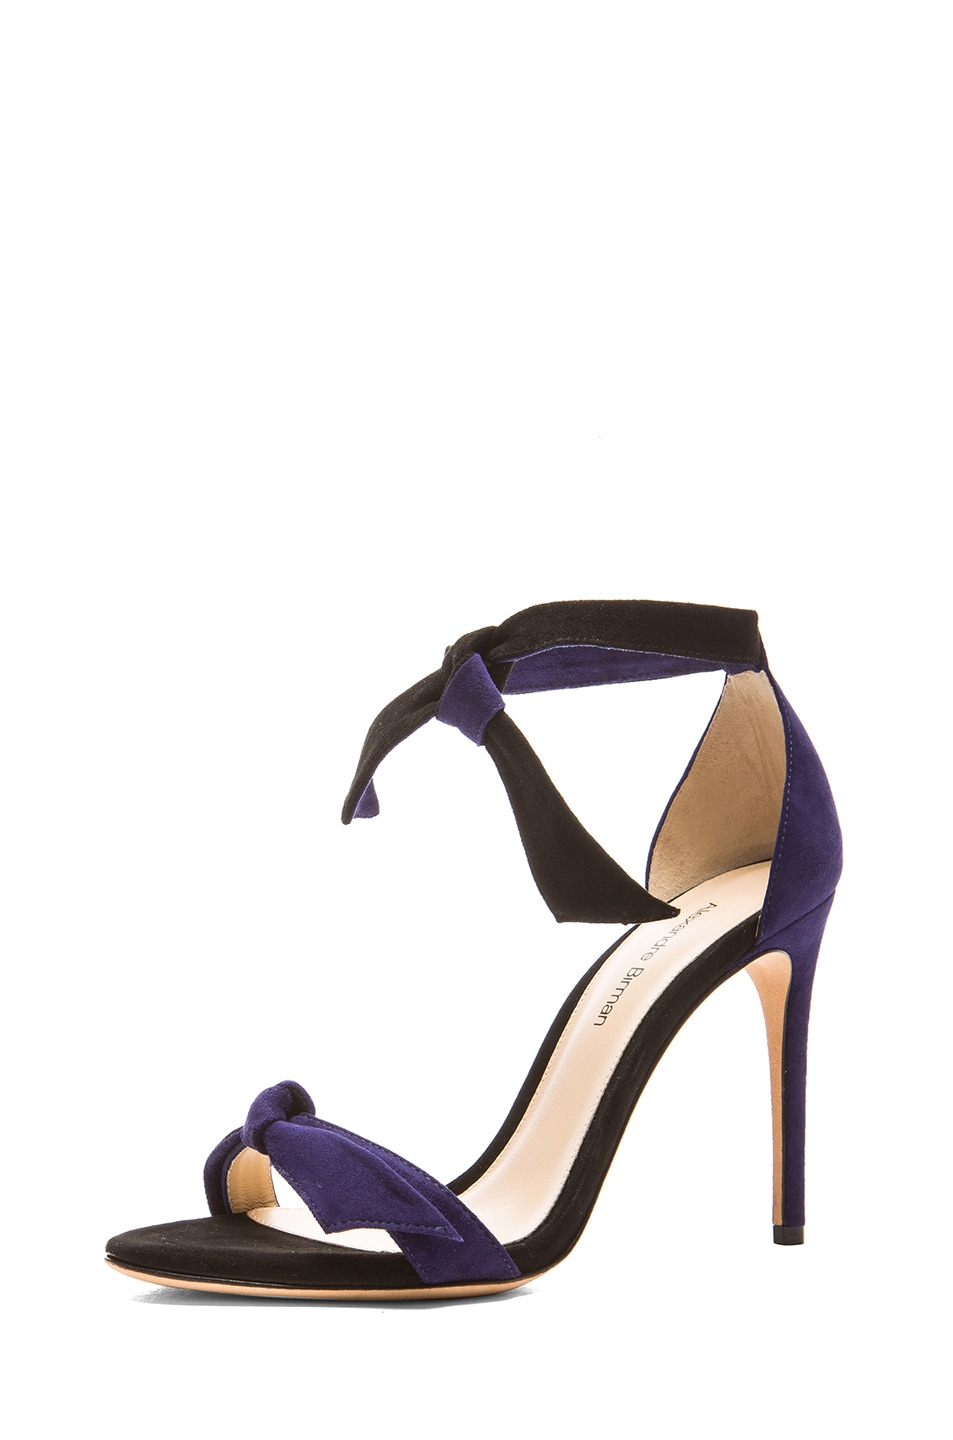 Image 2 of Alexandre Birman Clarita Suede Sandals in Navy & Black